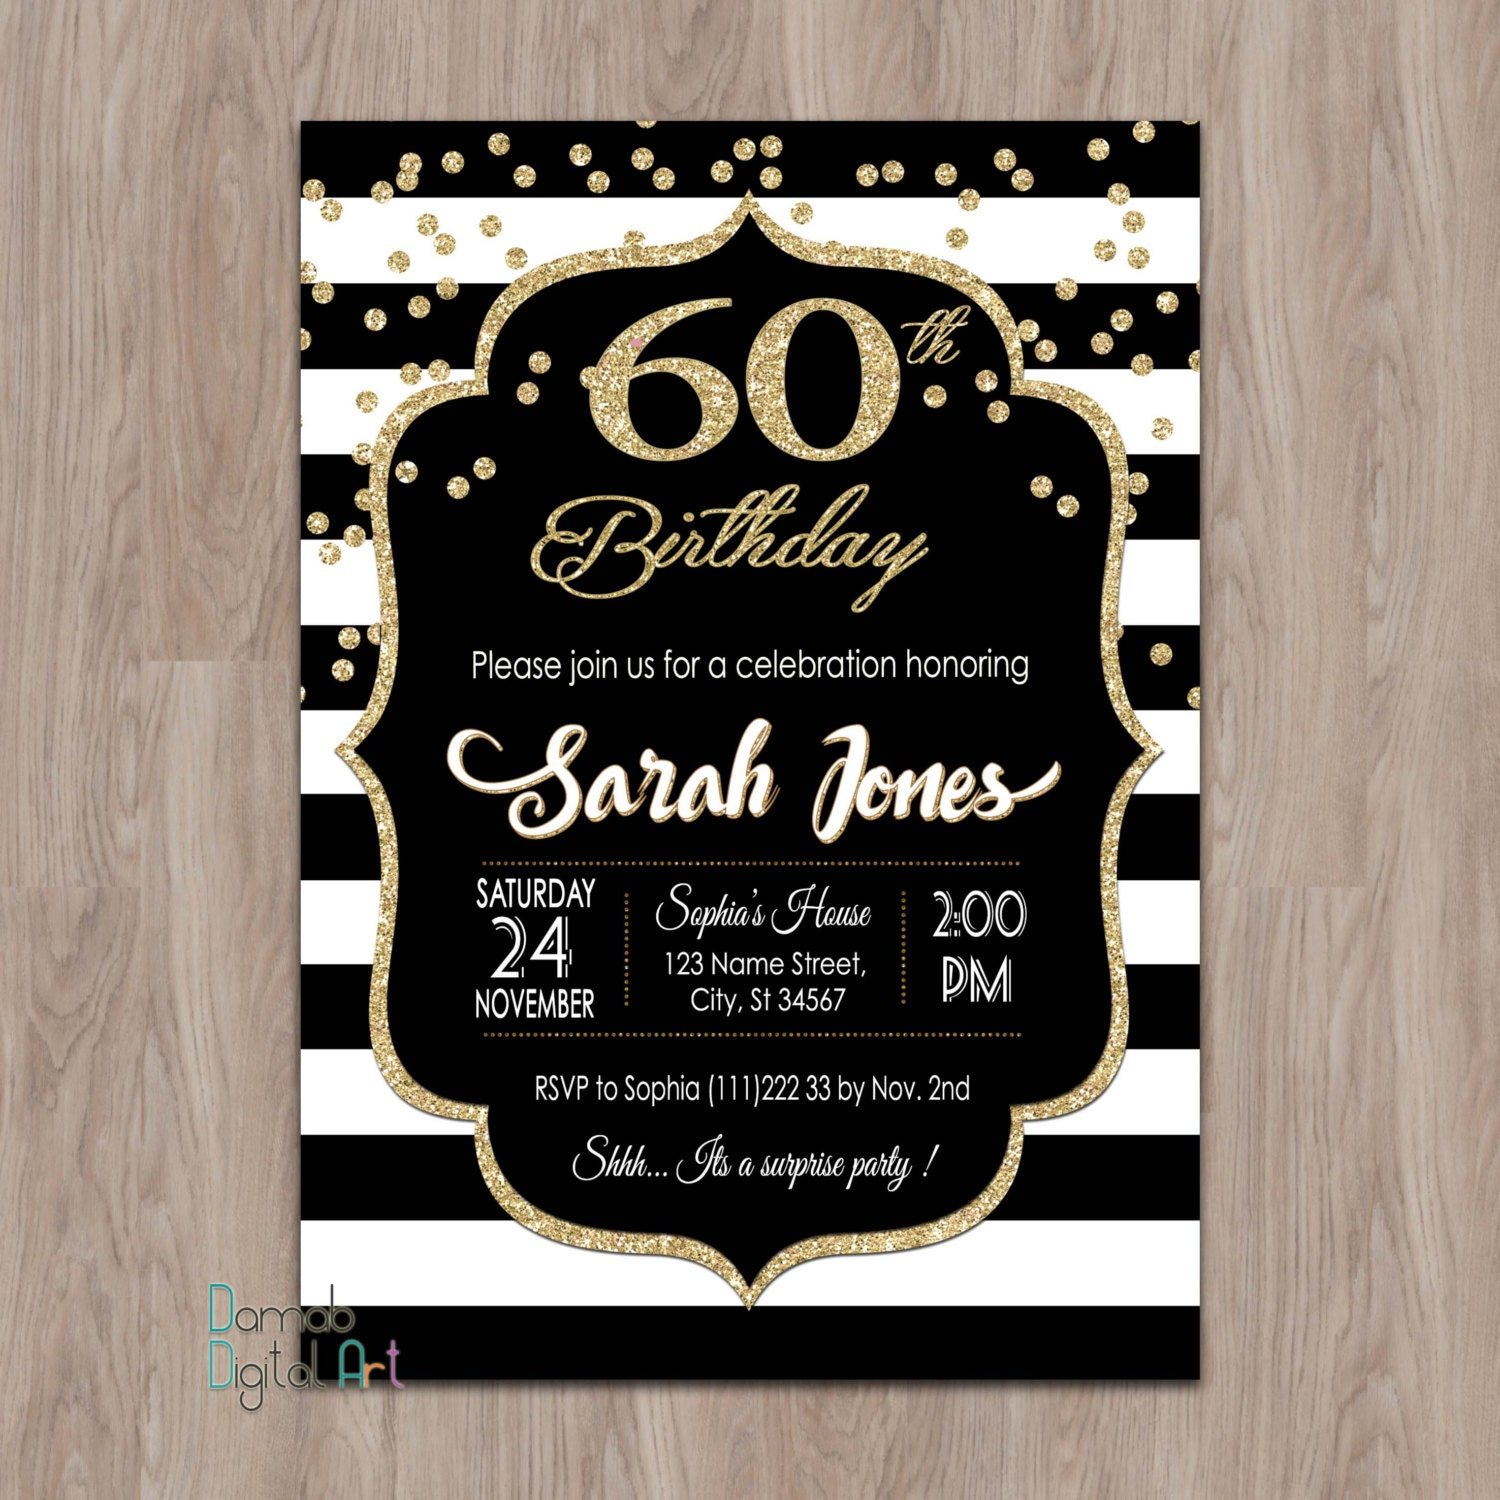 60th birthday invitations 60th birthday invitations for – Invitations for 60th Birthday